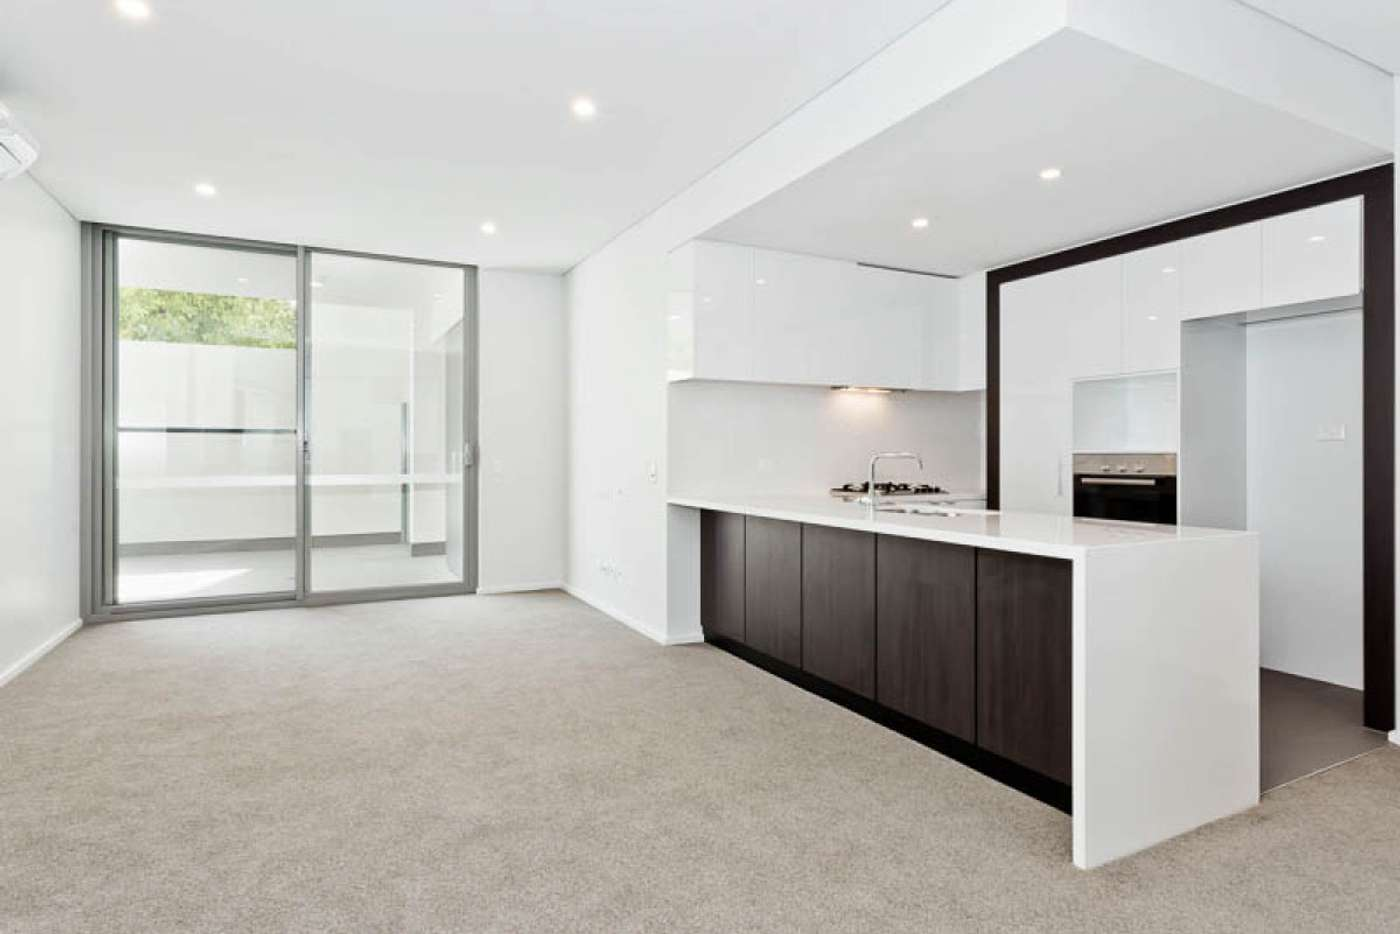 Sixth view of Homely apartment listing, 12/1 Hallam Way, Rivervale WA 6103